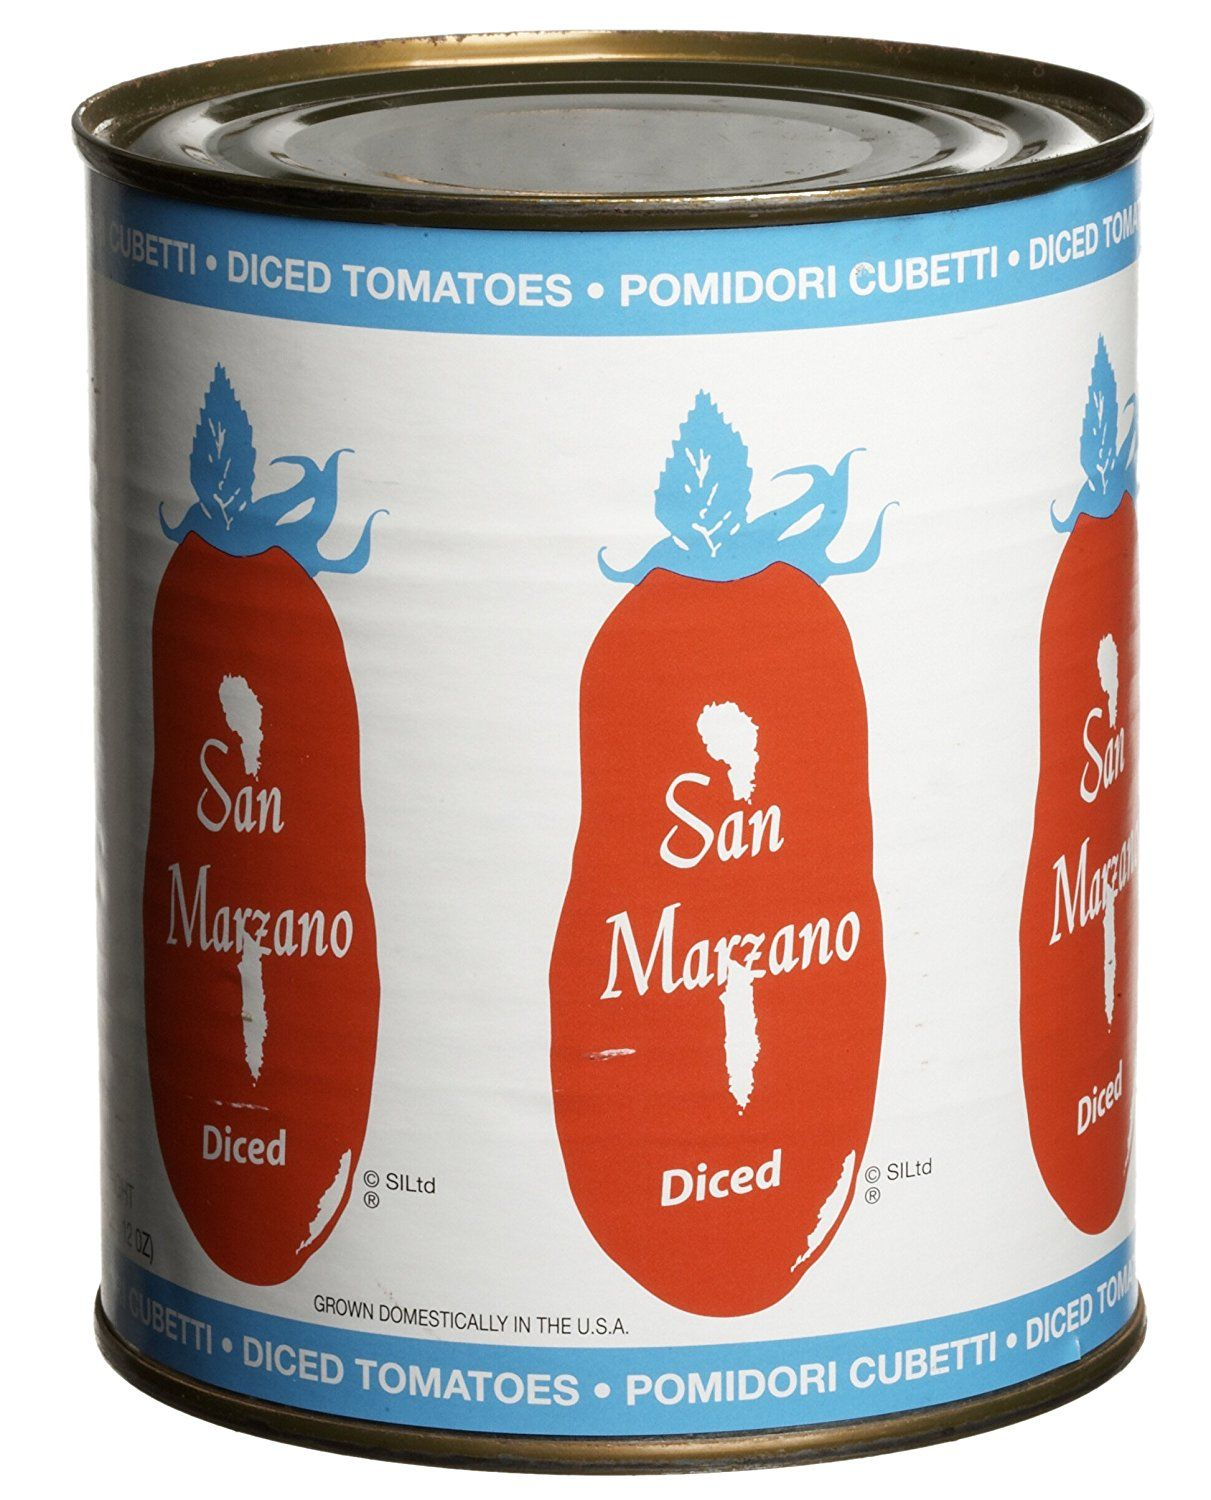 San Marzano Diced Tomatoes 28 Oz Check This Awesome Item Pin Fresh Groceries Diced Tomato Fresh Groceries Marzano